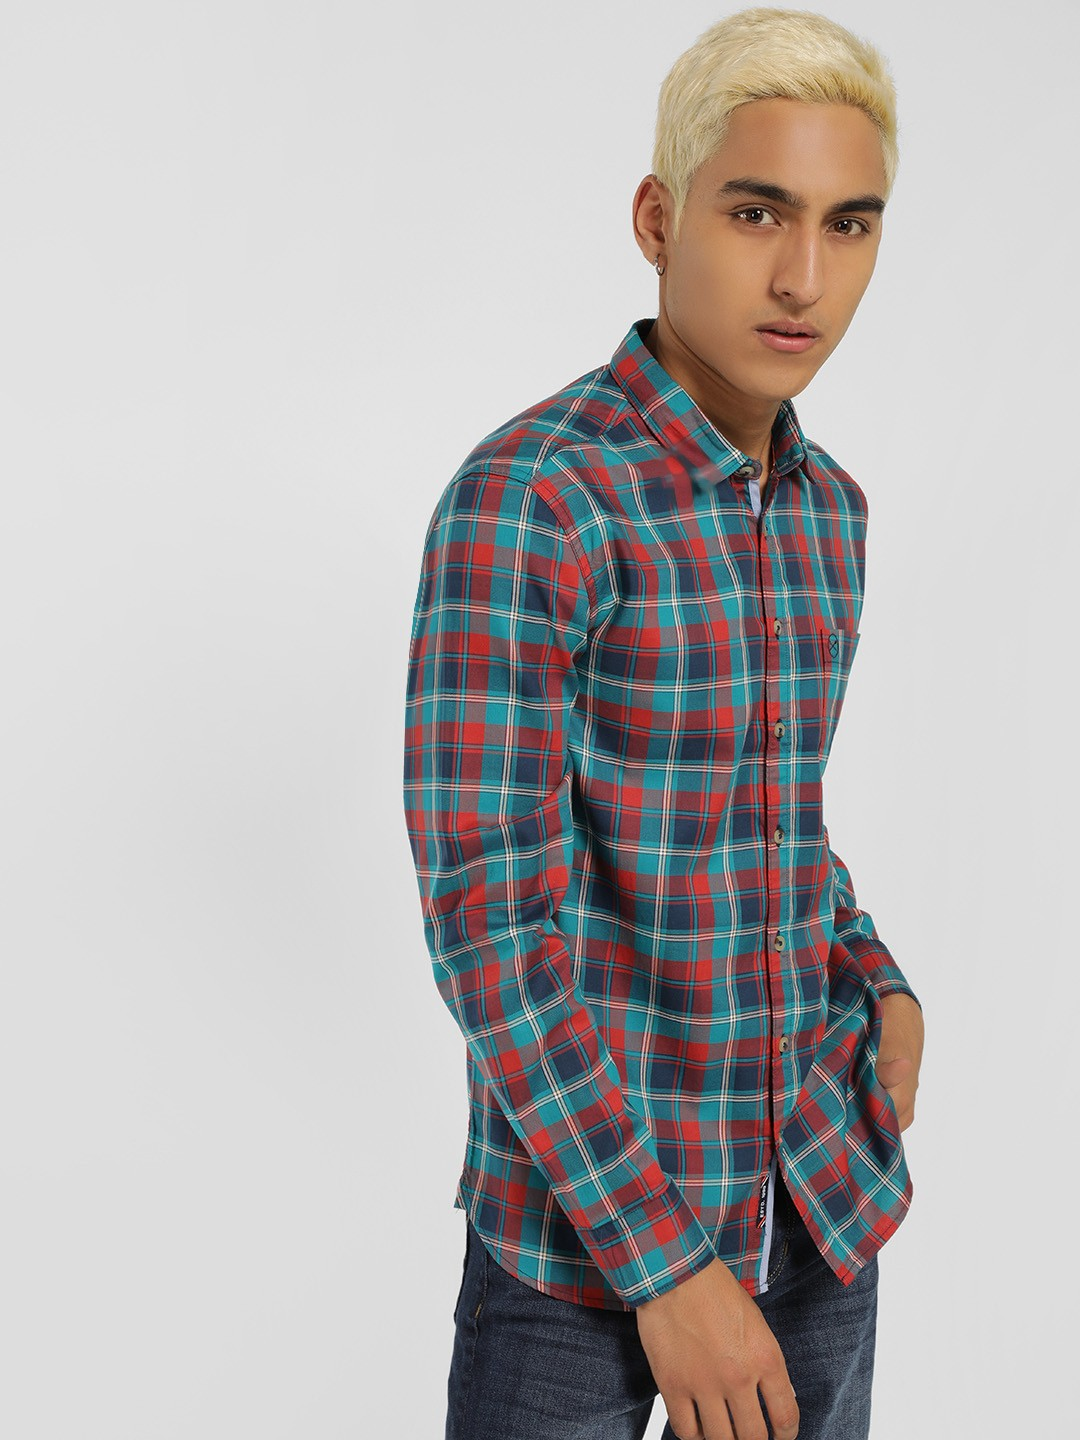 SCULLERS Green Multi-Check Slim Shirt 1